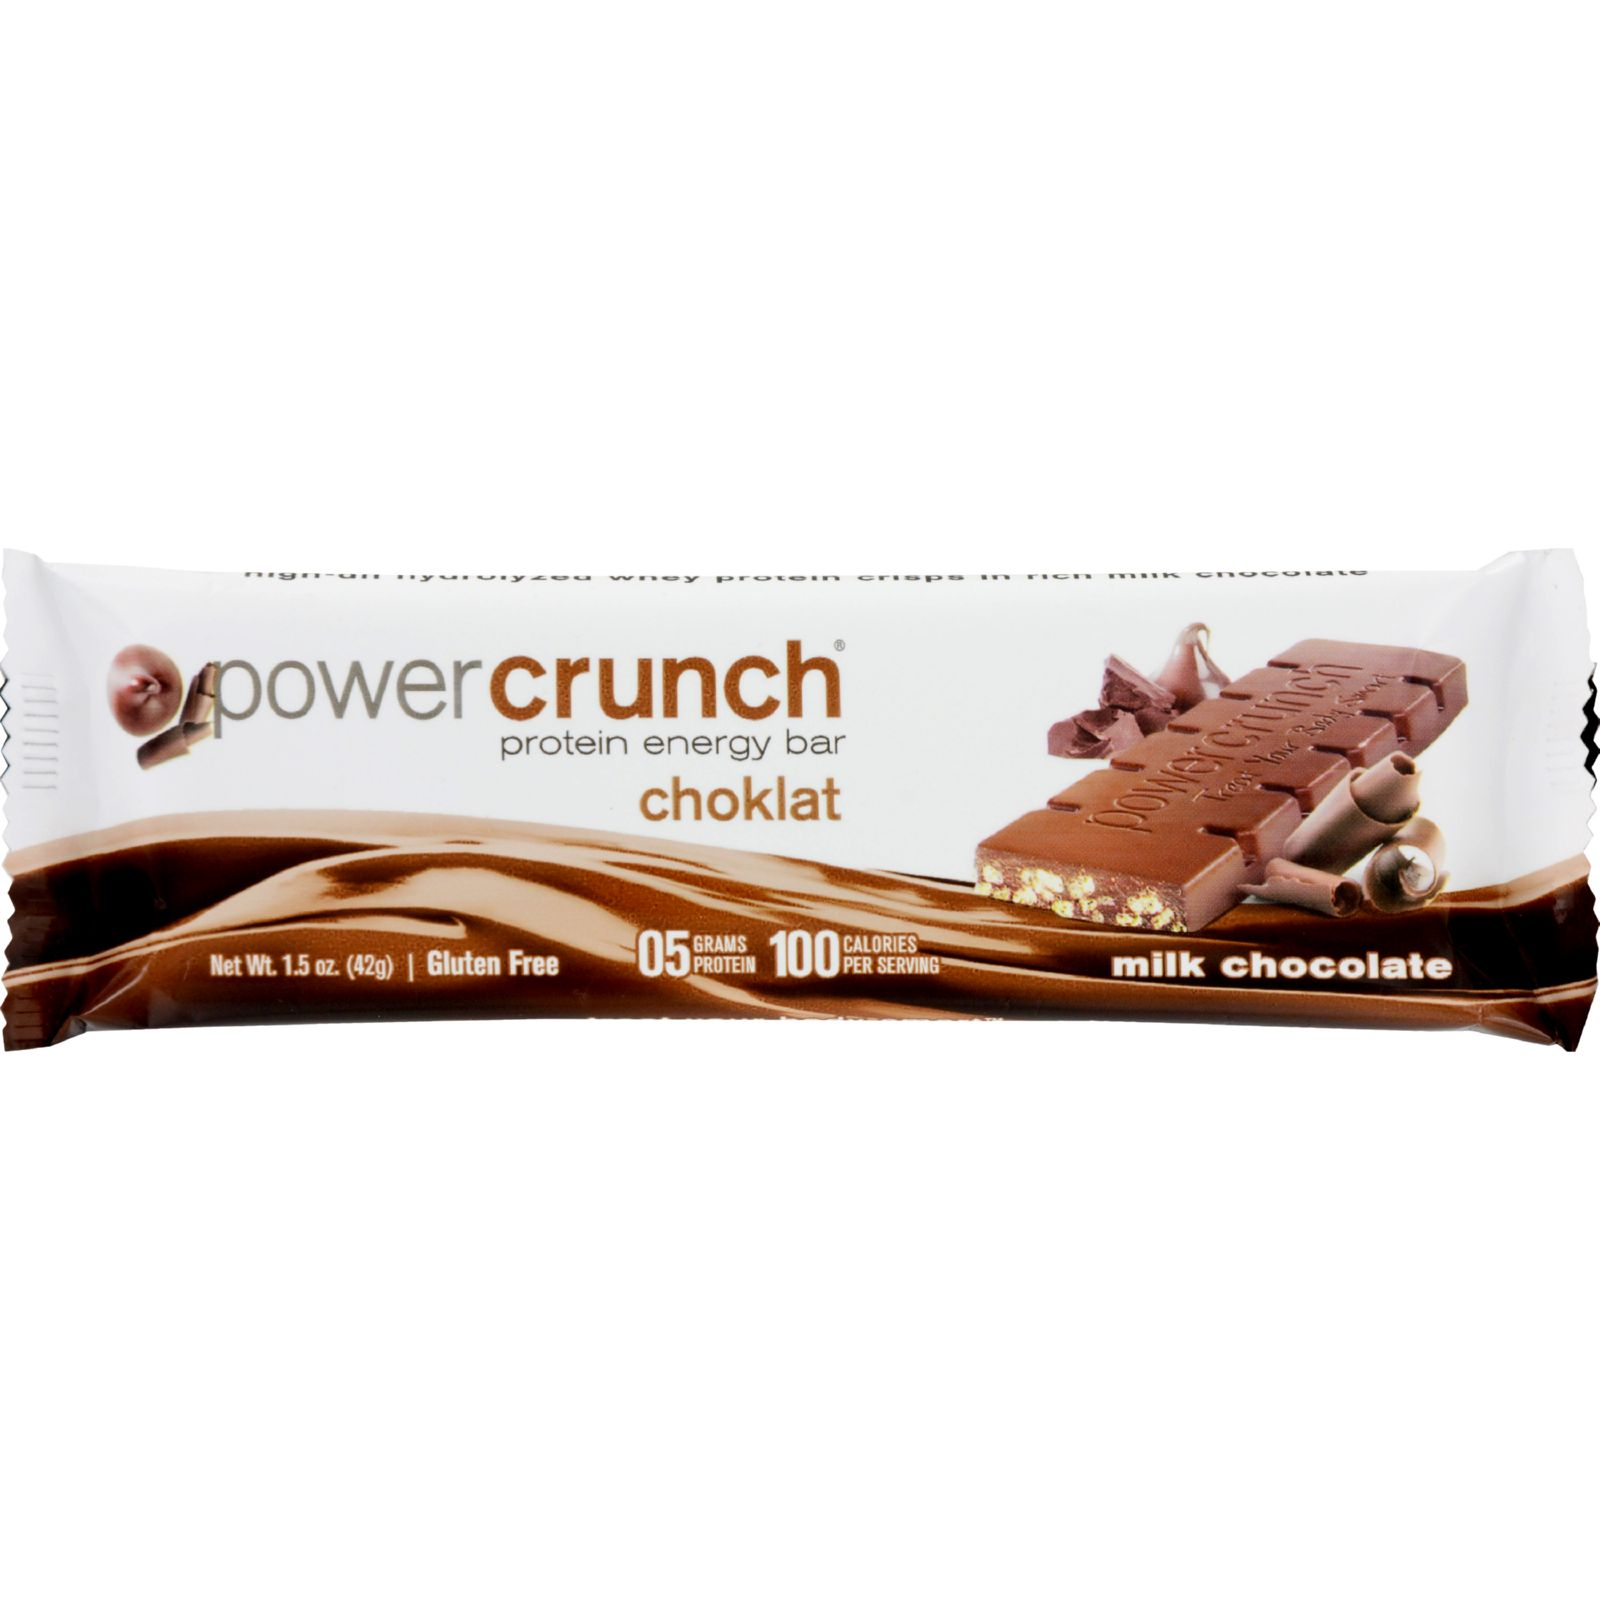 BNRG Choklat Crunch  Proto Whey Protein Crisps in Belgian Chocolate, 1.5 oz